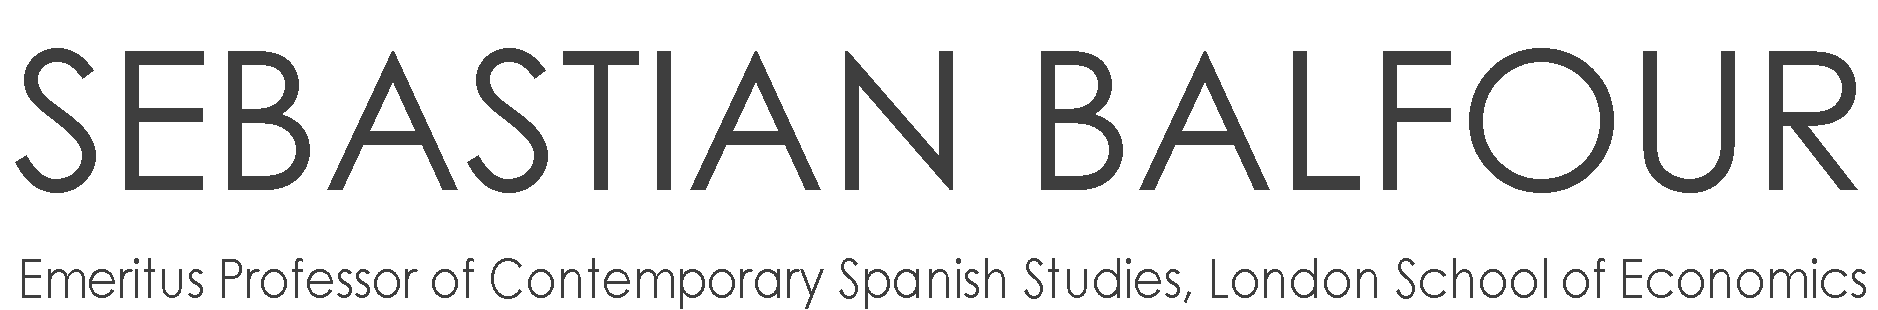 Sebastian Balfour | Emeritus Professor Contemporary Spanish Studies Logo